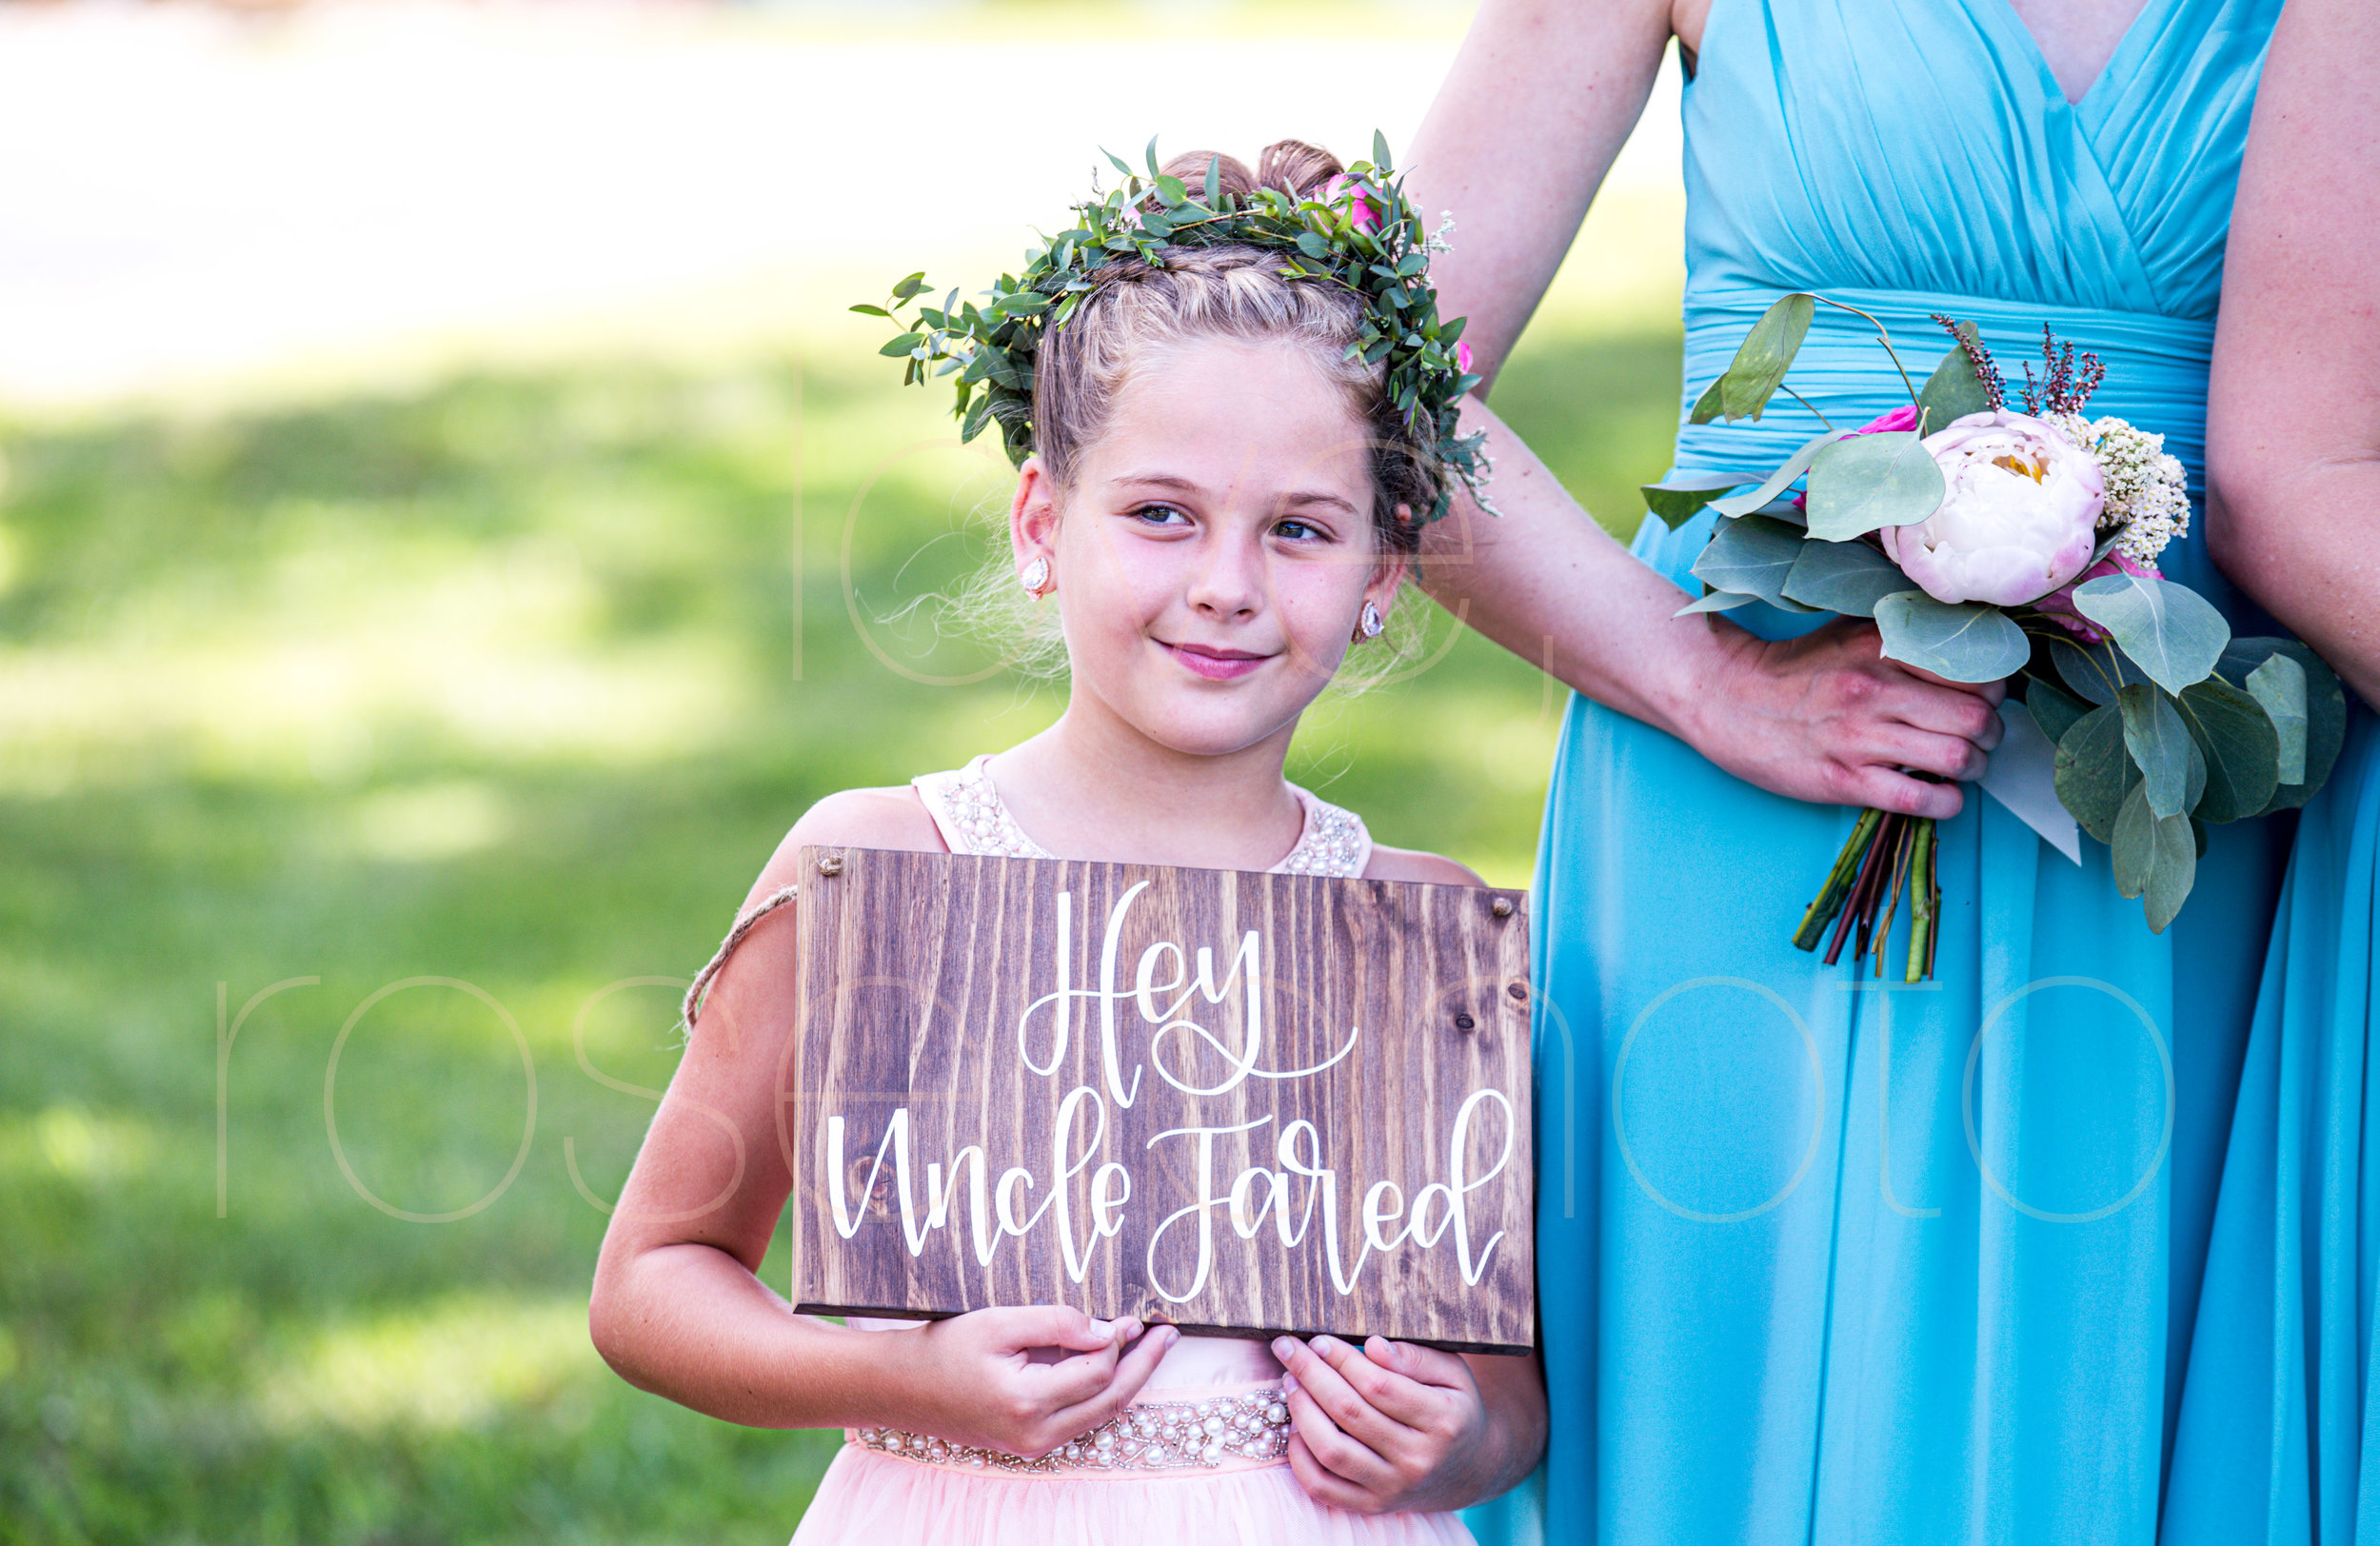 E + J Bloomington at The Wilds wedding photography pink roses blush baby blue bridesmaids dress flower girl destination photo -52.jpg